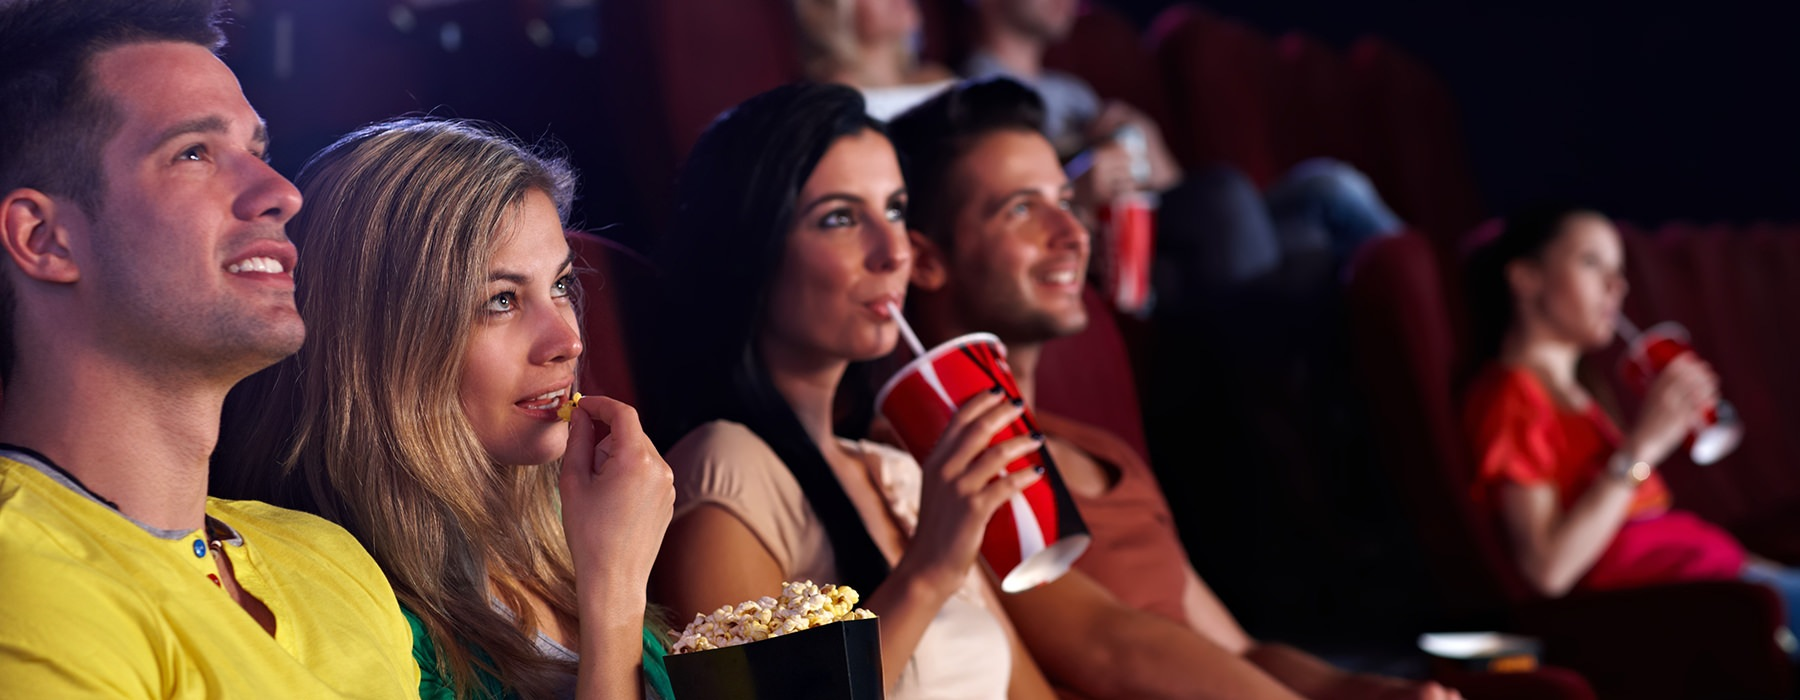 stock image of couple at movie theater